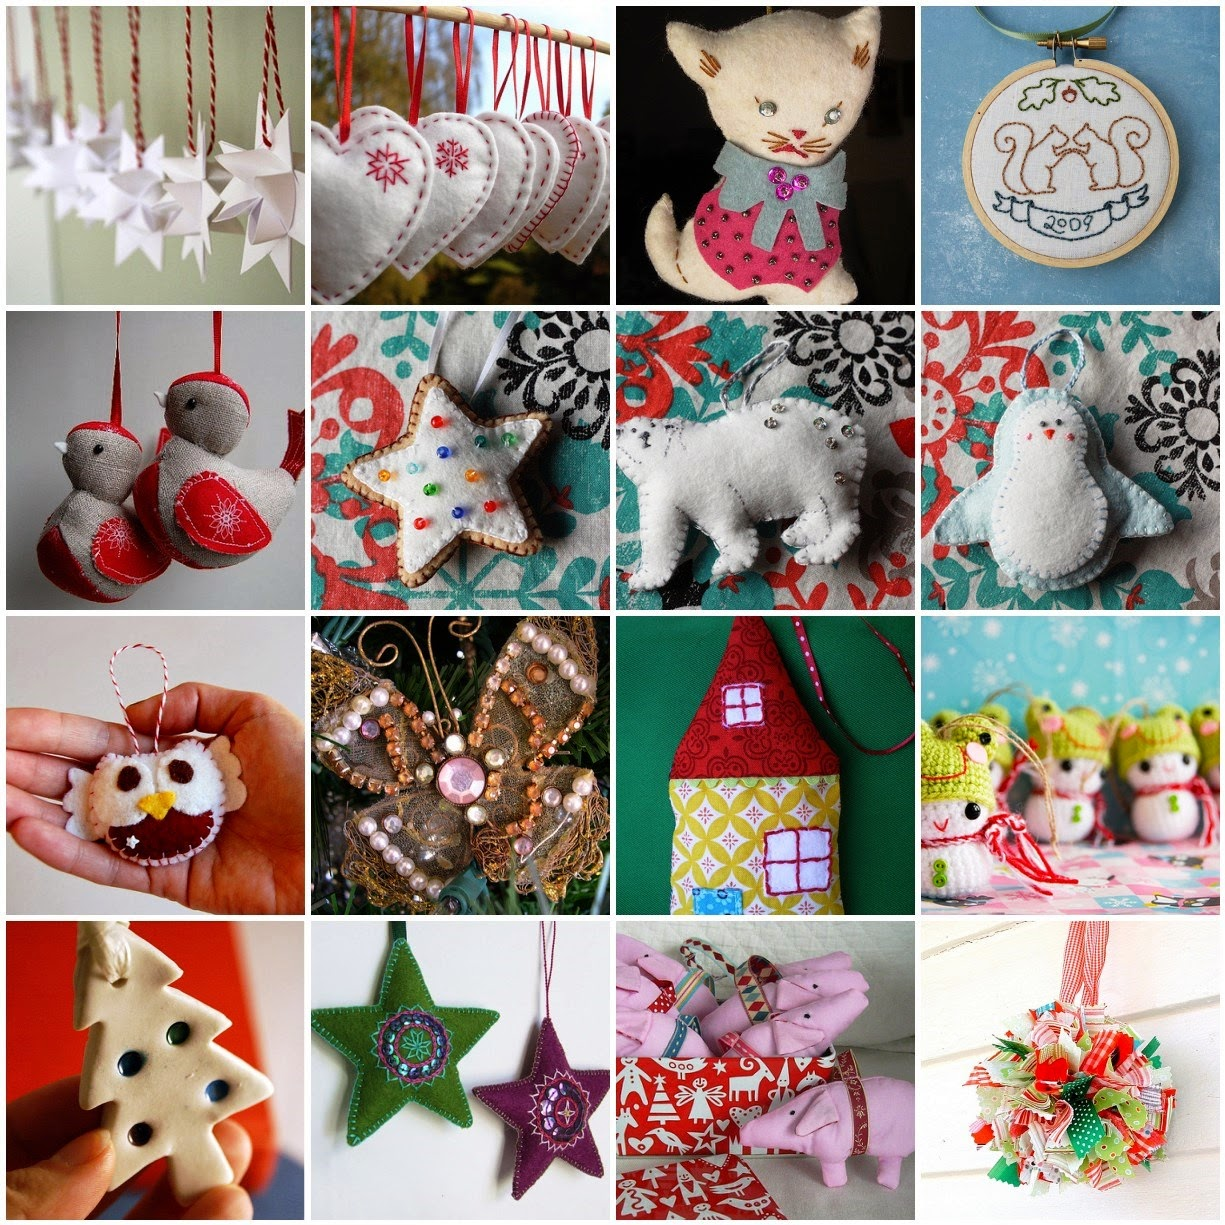 Quilt Guild Swap Ideas : Houston Modern Quilt Guild: Holiday Ornament Swap at the The Christmas Party!